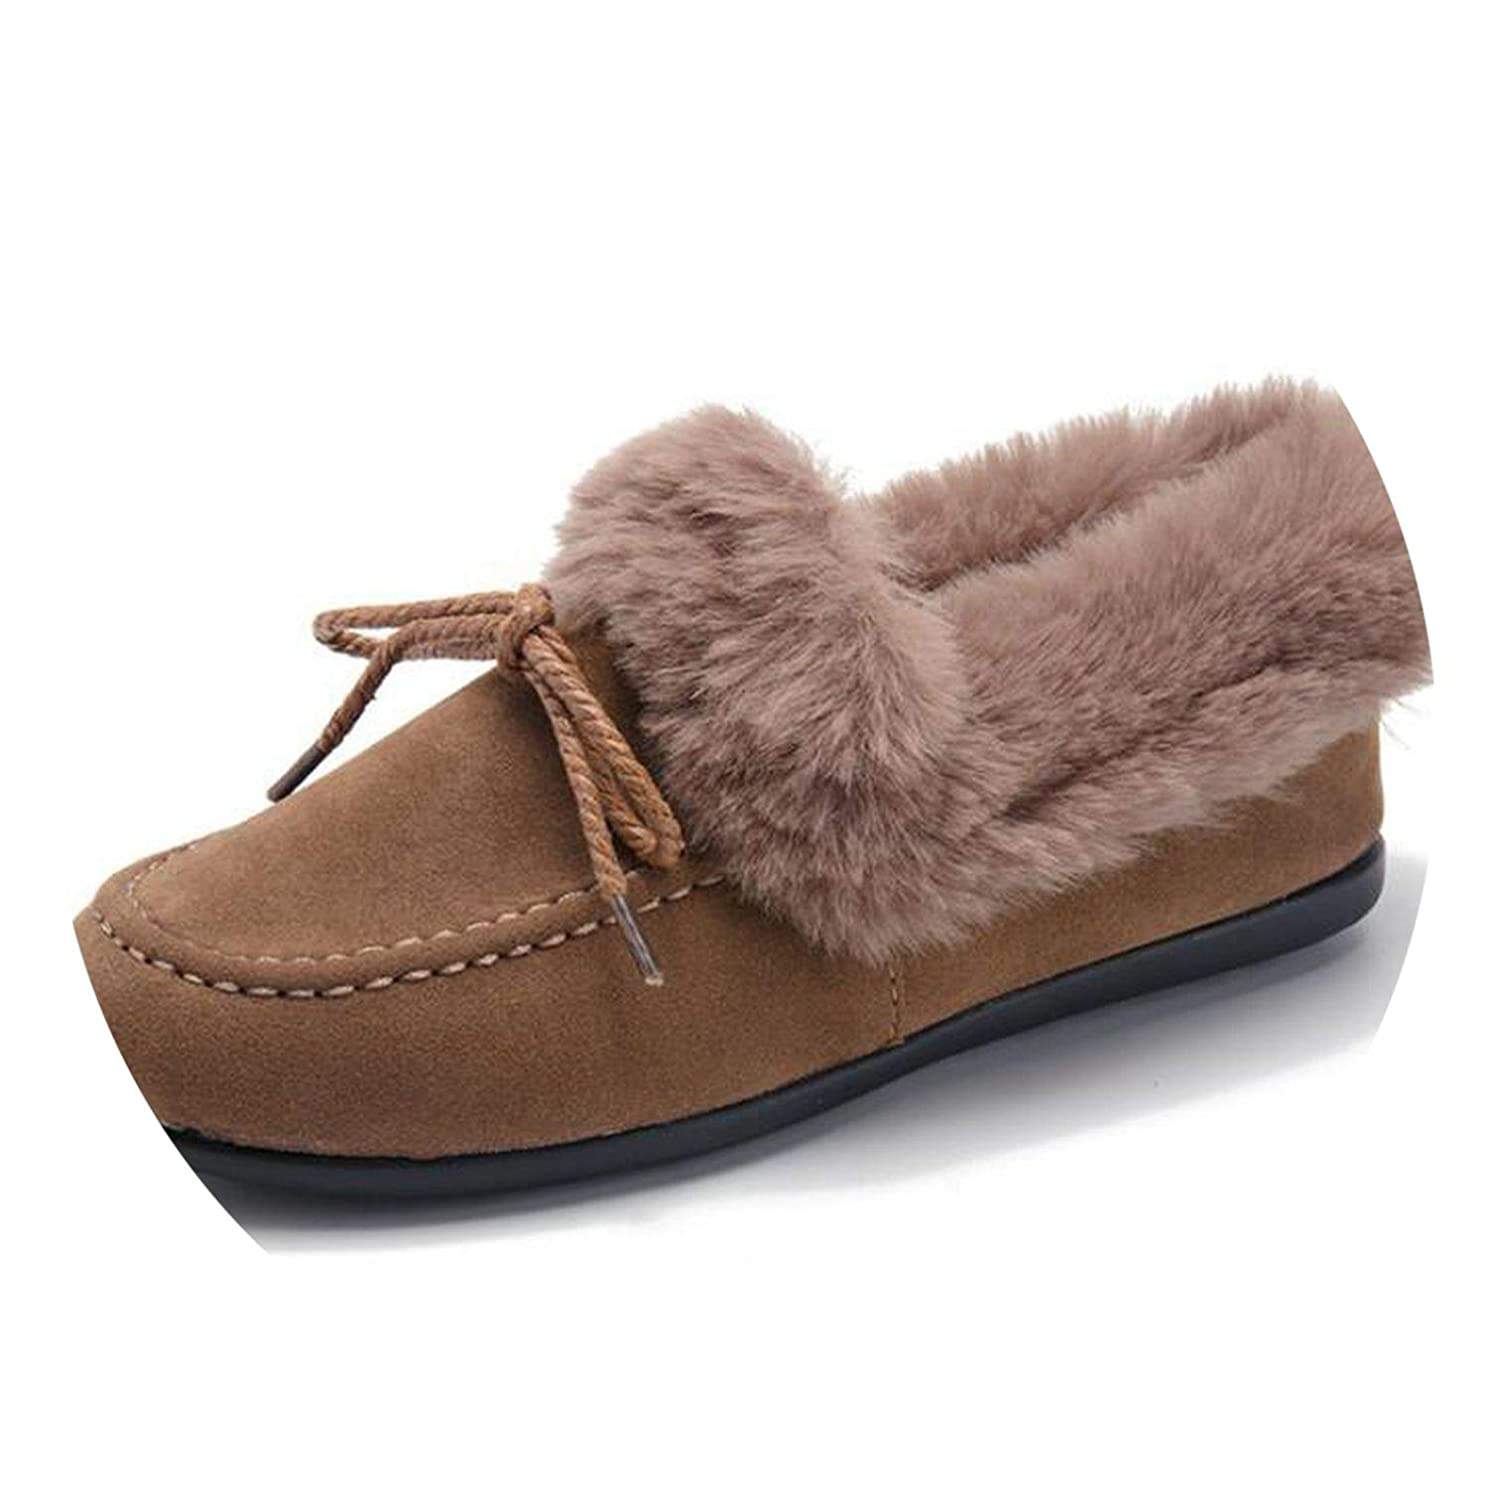 New-Loft ies Shoes Warm Fe Boots Cotton Shoes Bow-Knot lace-up Sweet Snow Boots Boot F855